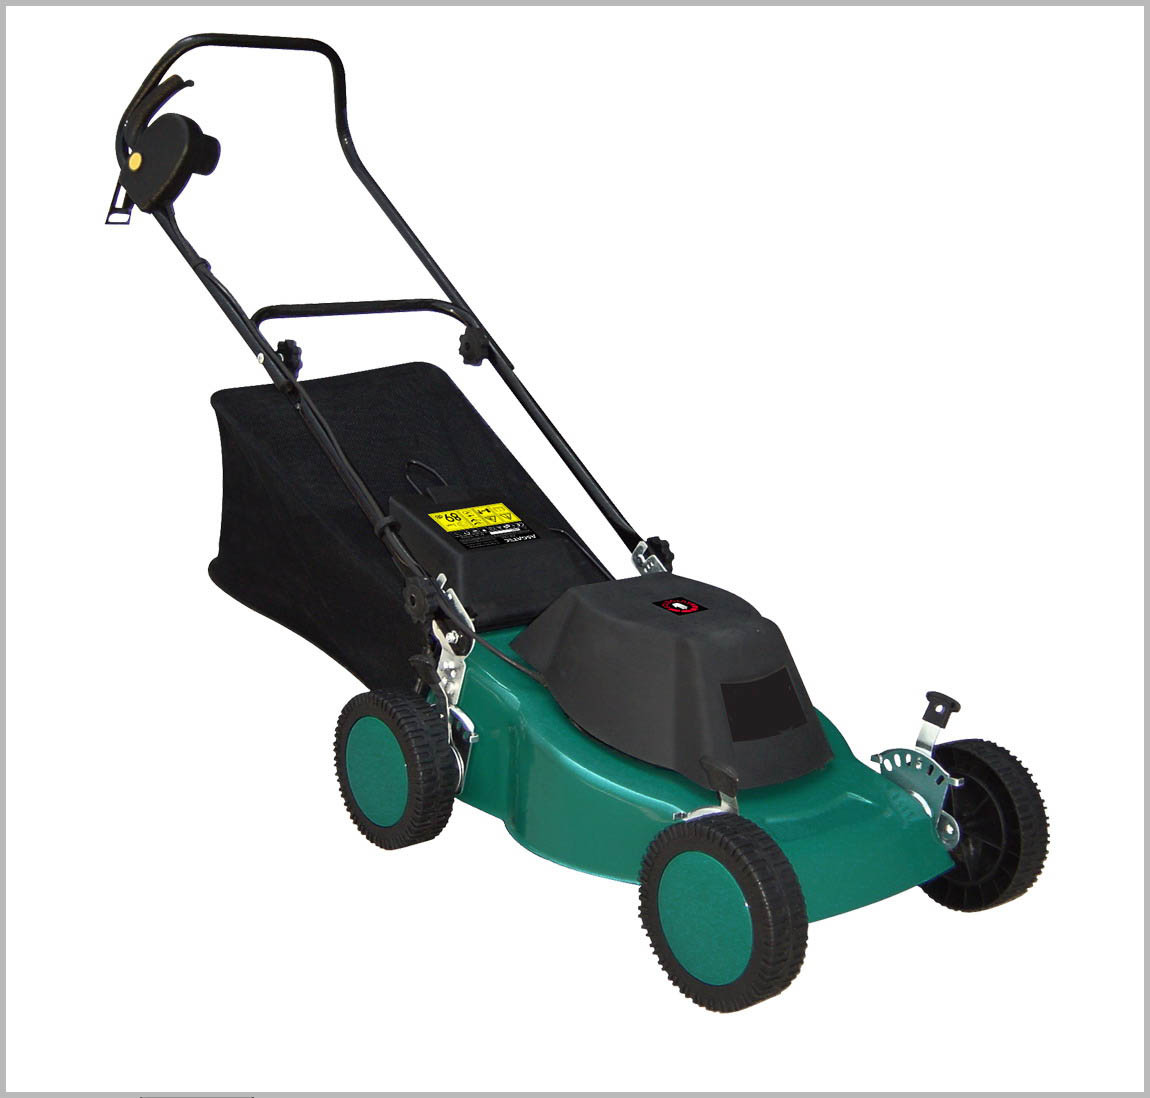 China Electric Lawn Mower Elm 1600 China Lawn Mower Gasoline Lawn Mower